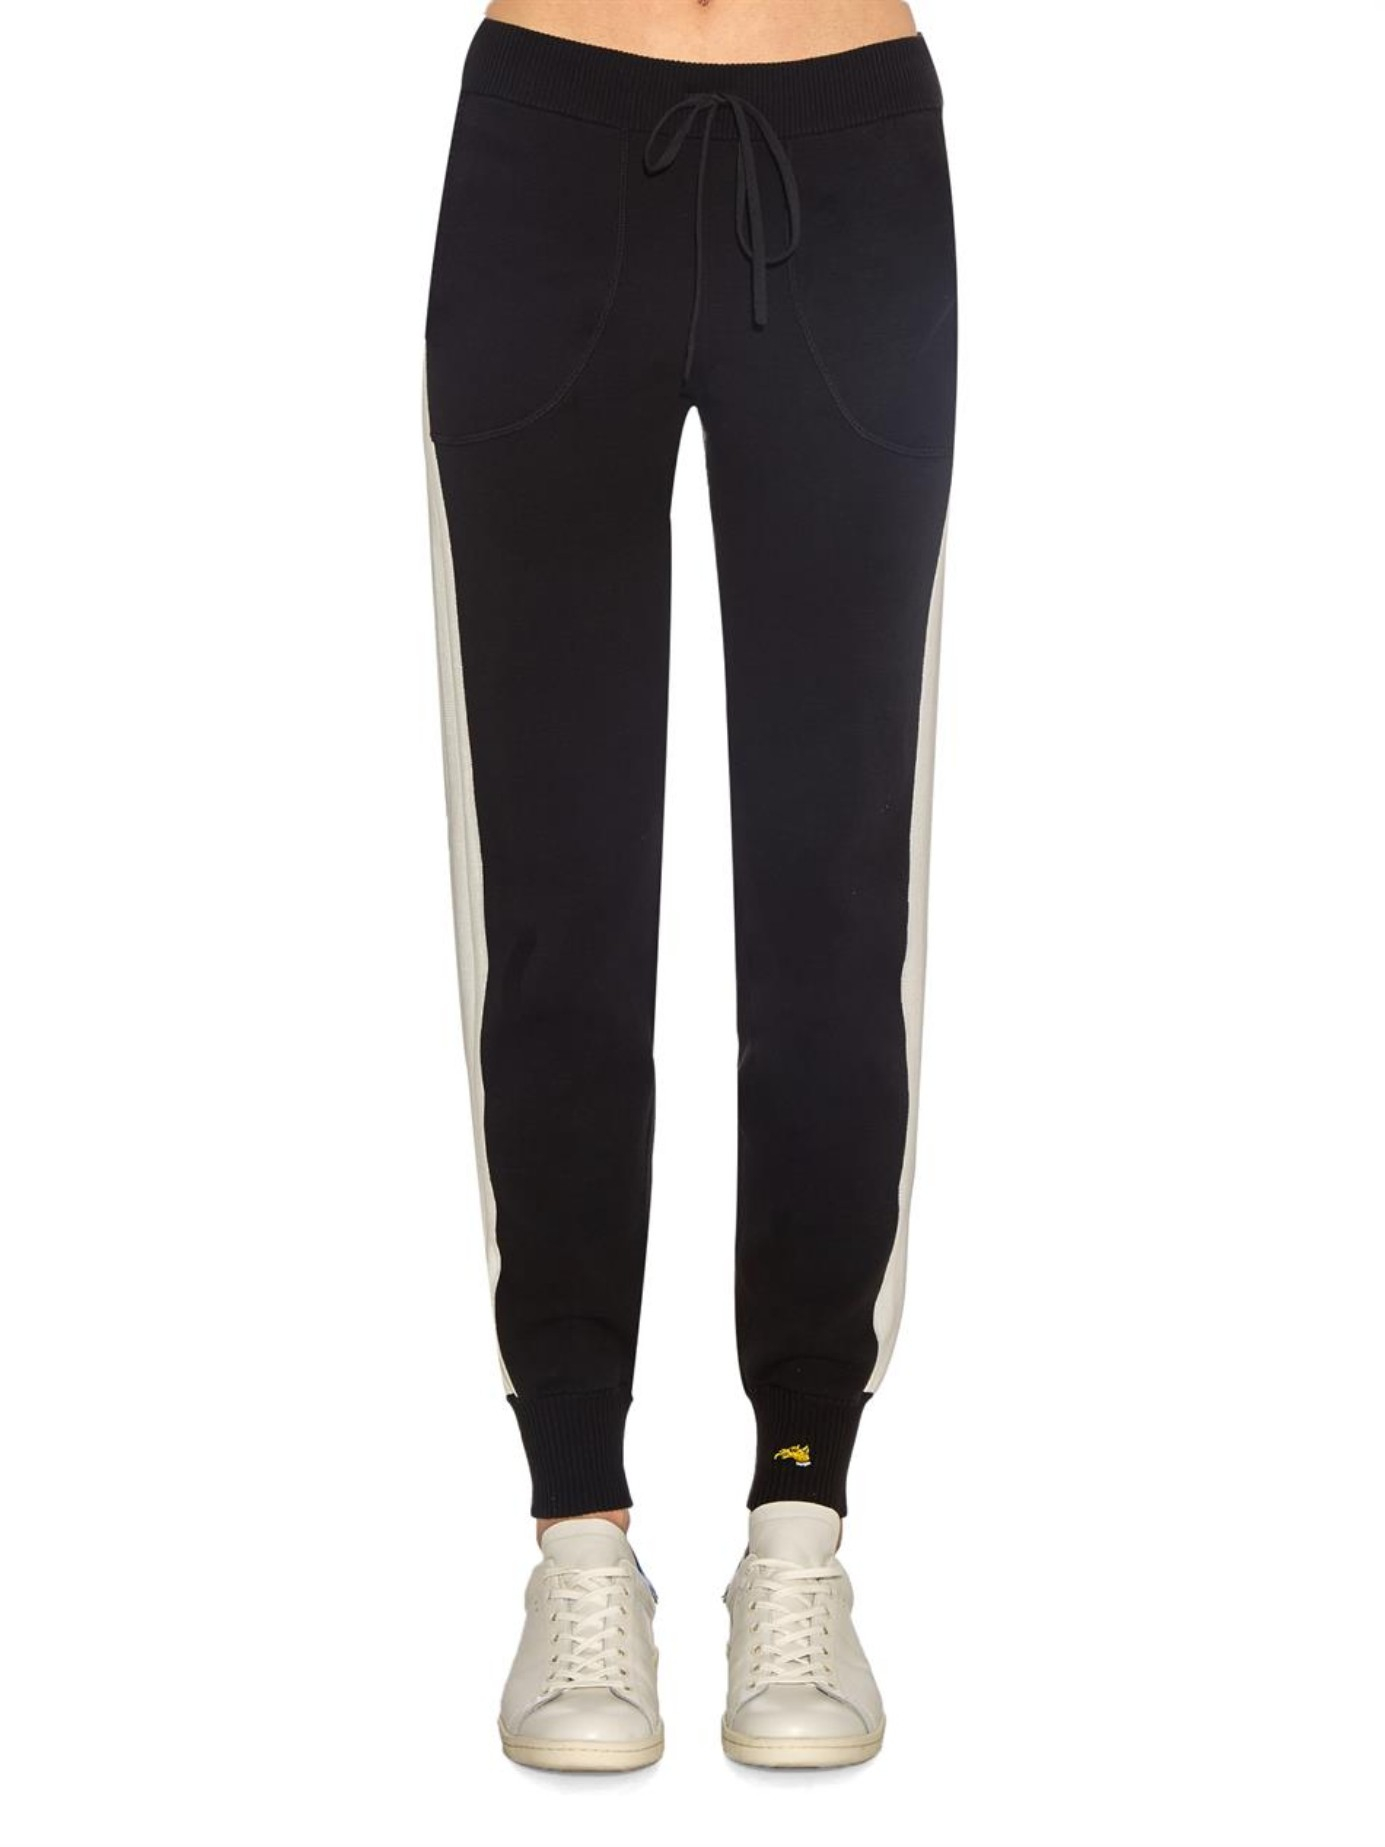 c2c5c051 Bella Freud Five-Stripe Cotton-Knit Track Pants in Black - Lyst